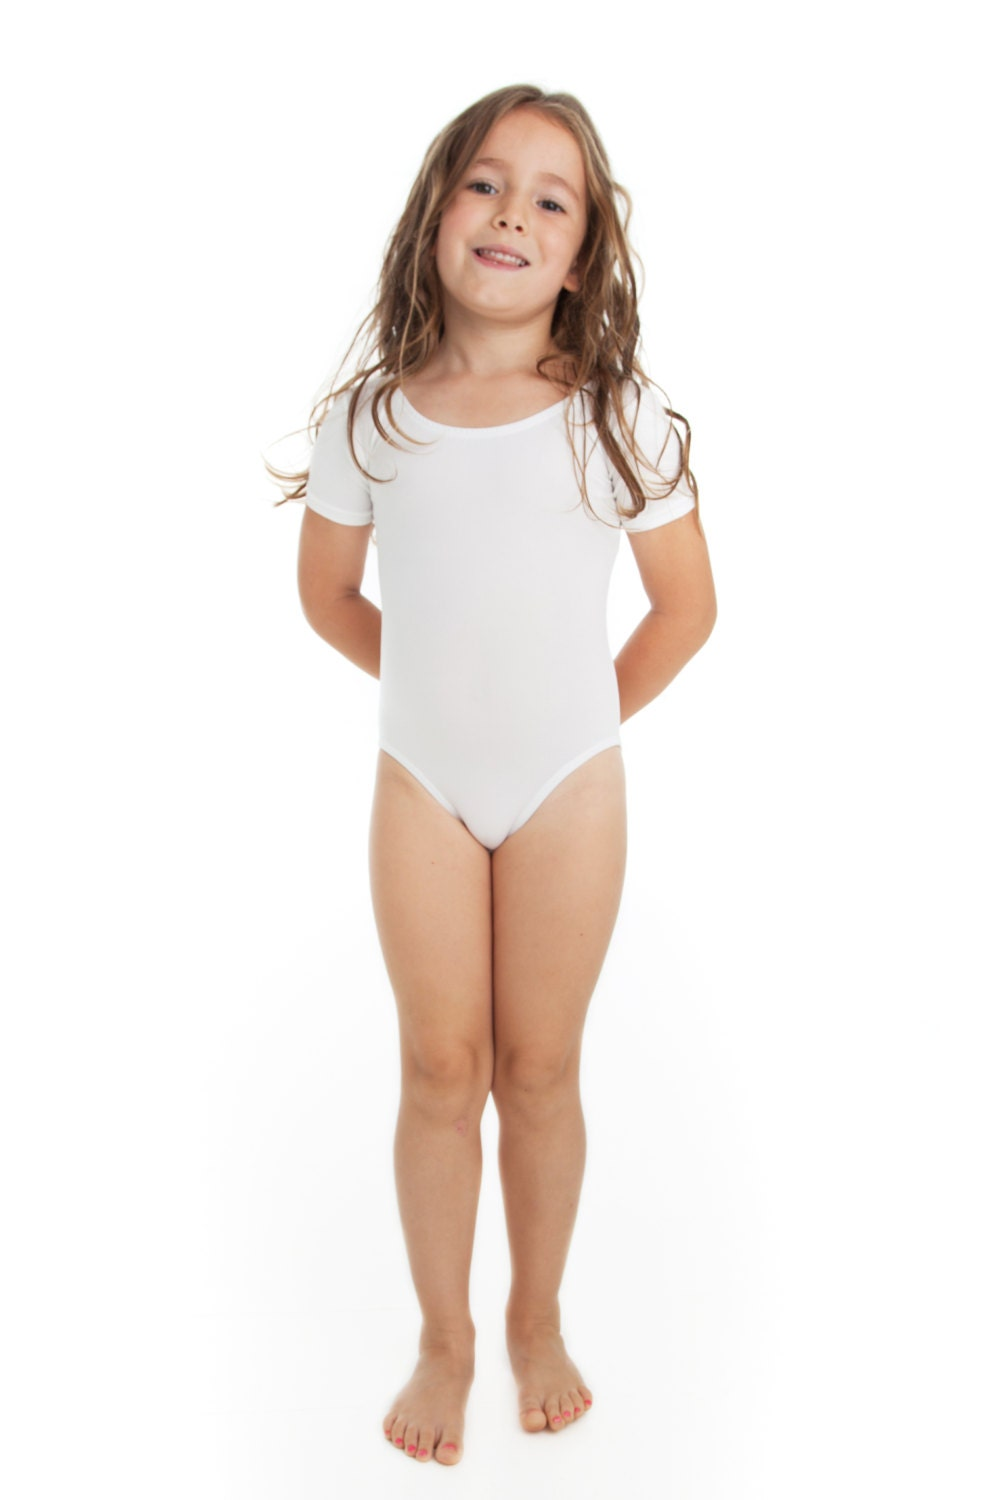 You Go Girl Dancewear has everything you need such as dance tights, shorts, and leotards from leading brands like Body Wrappers, Capezio and more. With unbeatable prices and a wide range of sizes, we're sure you'll find exactly what you're looking for.